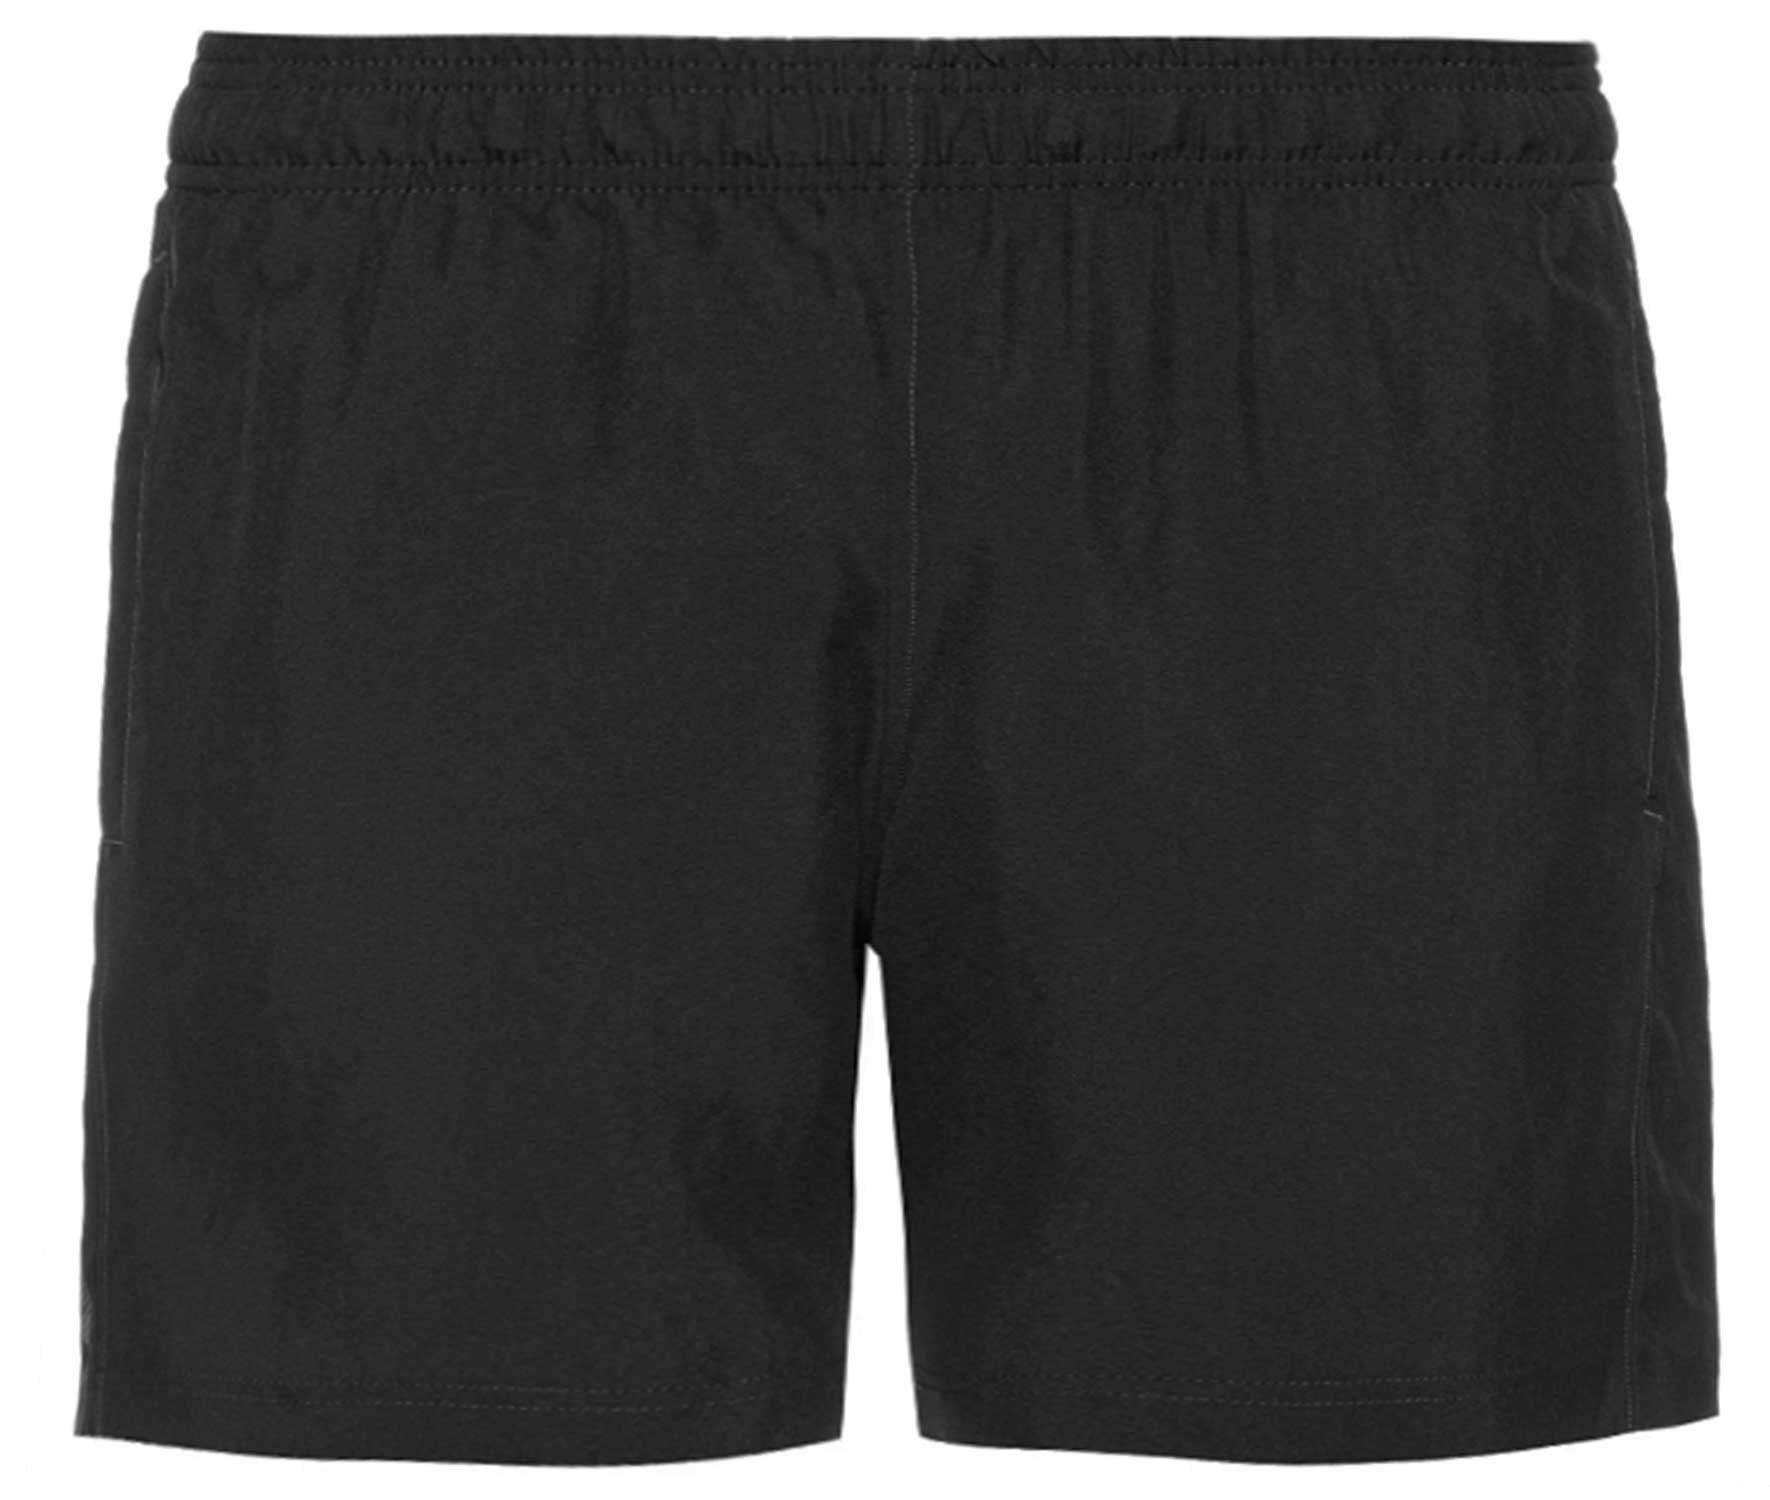 Tony Brown Herren Shorts | Tony Brown Herren Shorts | Hosen